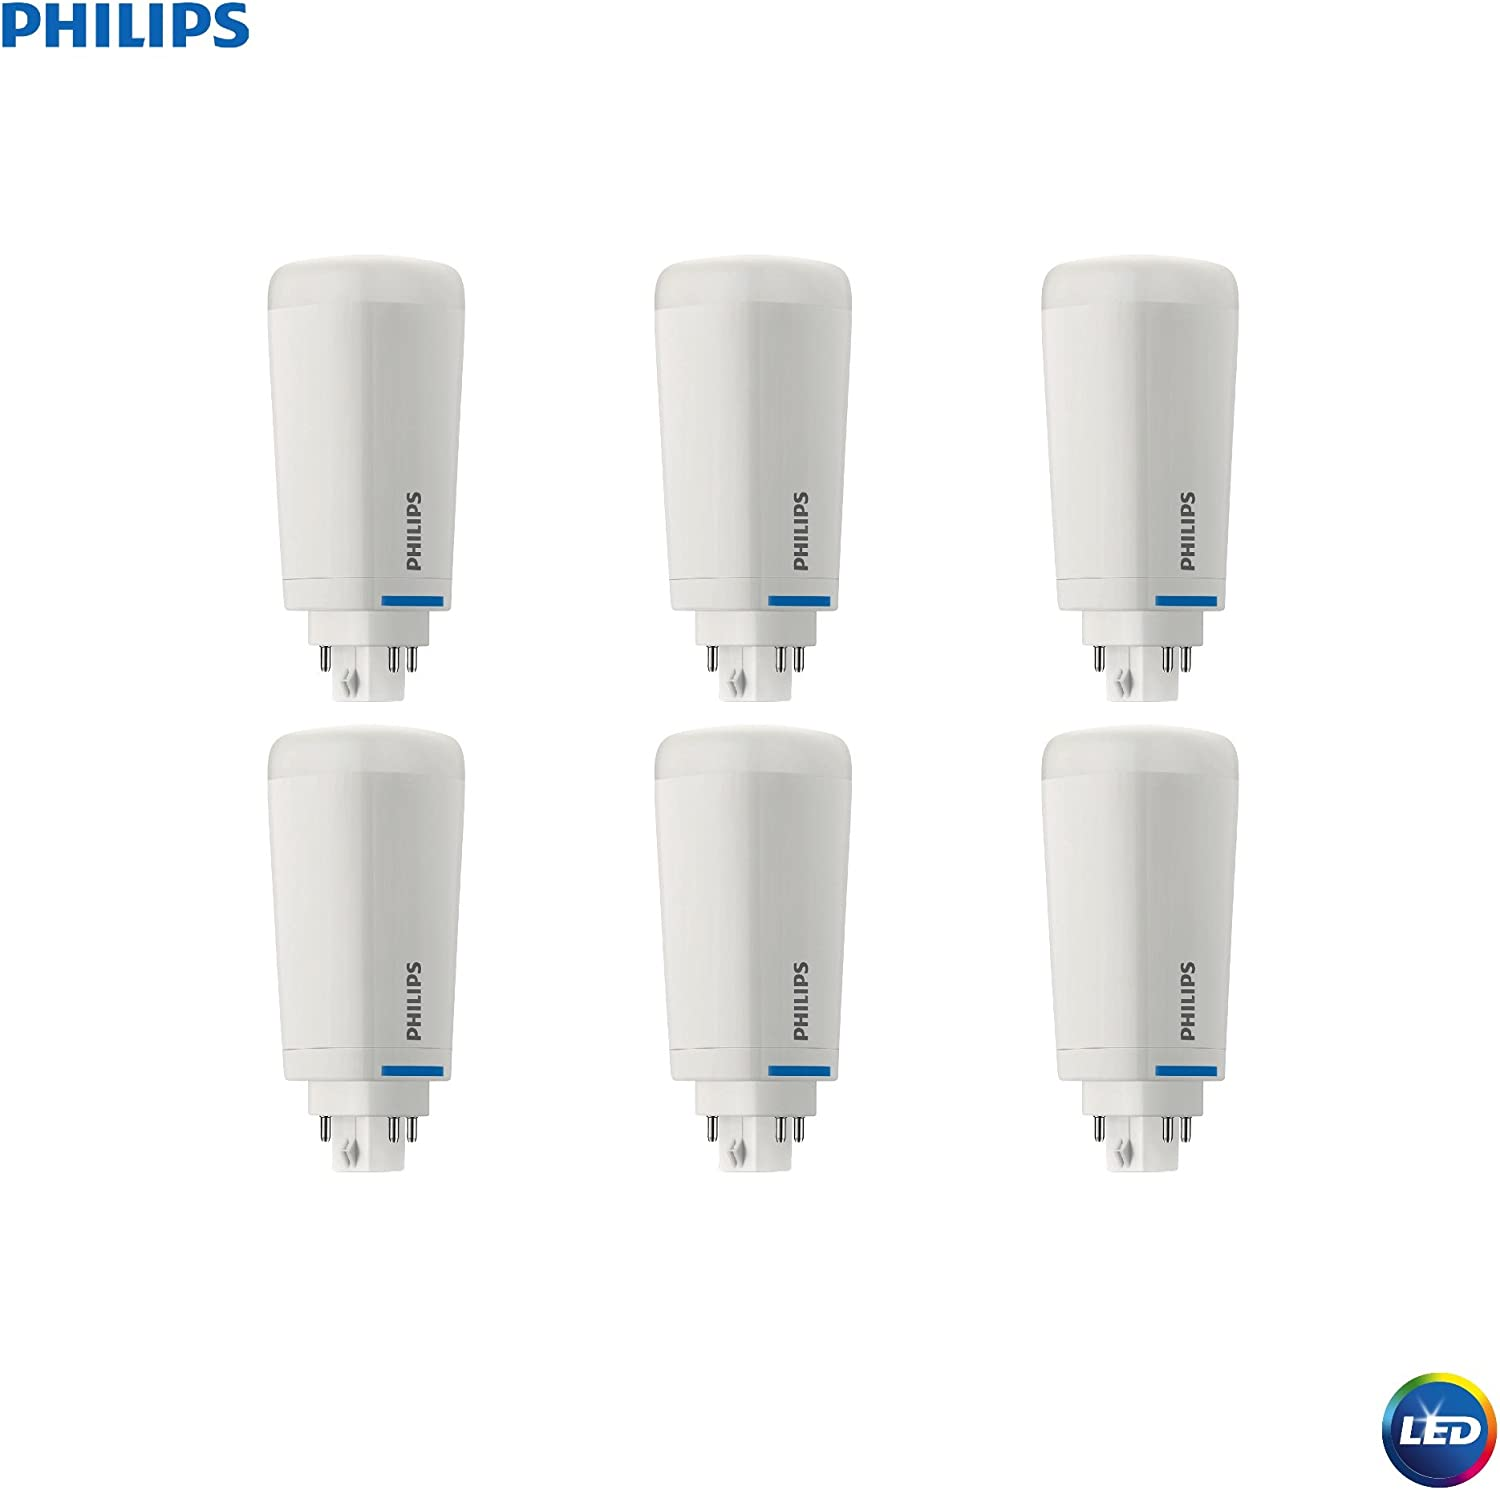 Philips LED 472845 LED Energy Saver PL-C Light Bulb 1300-Lumen, 4000-Kelvin, 10.5 (26-Watt Equivalent), 4-Pin G24Q Base, Cool White, 6 Pack